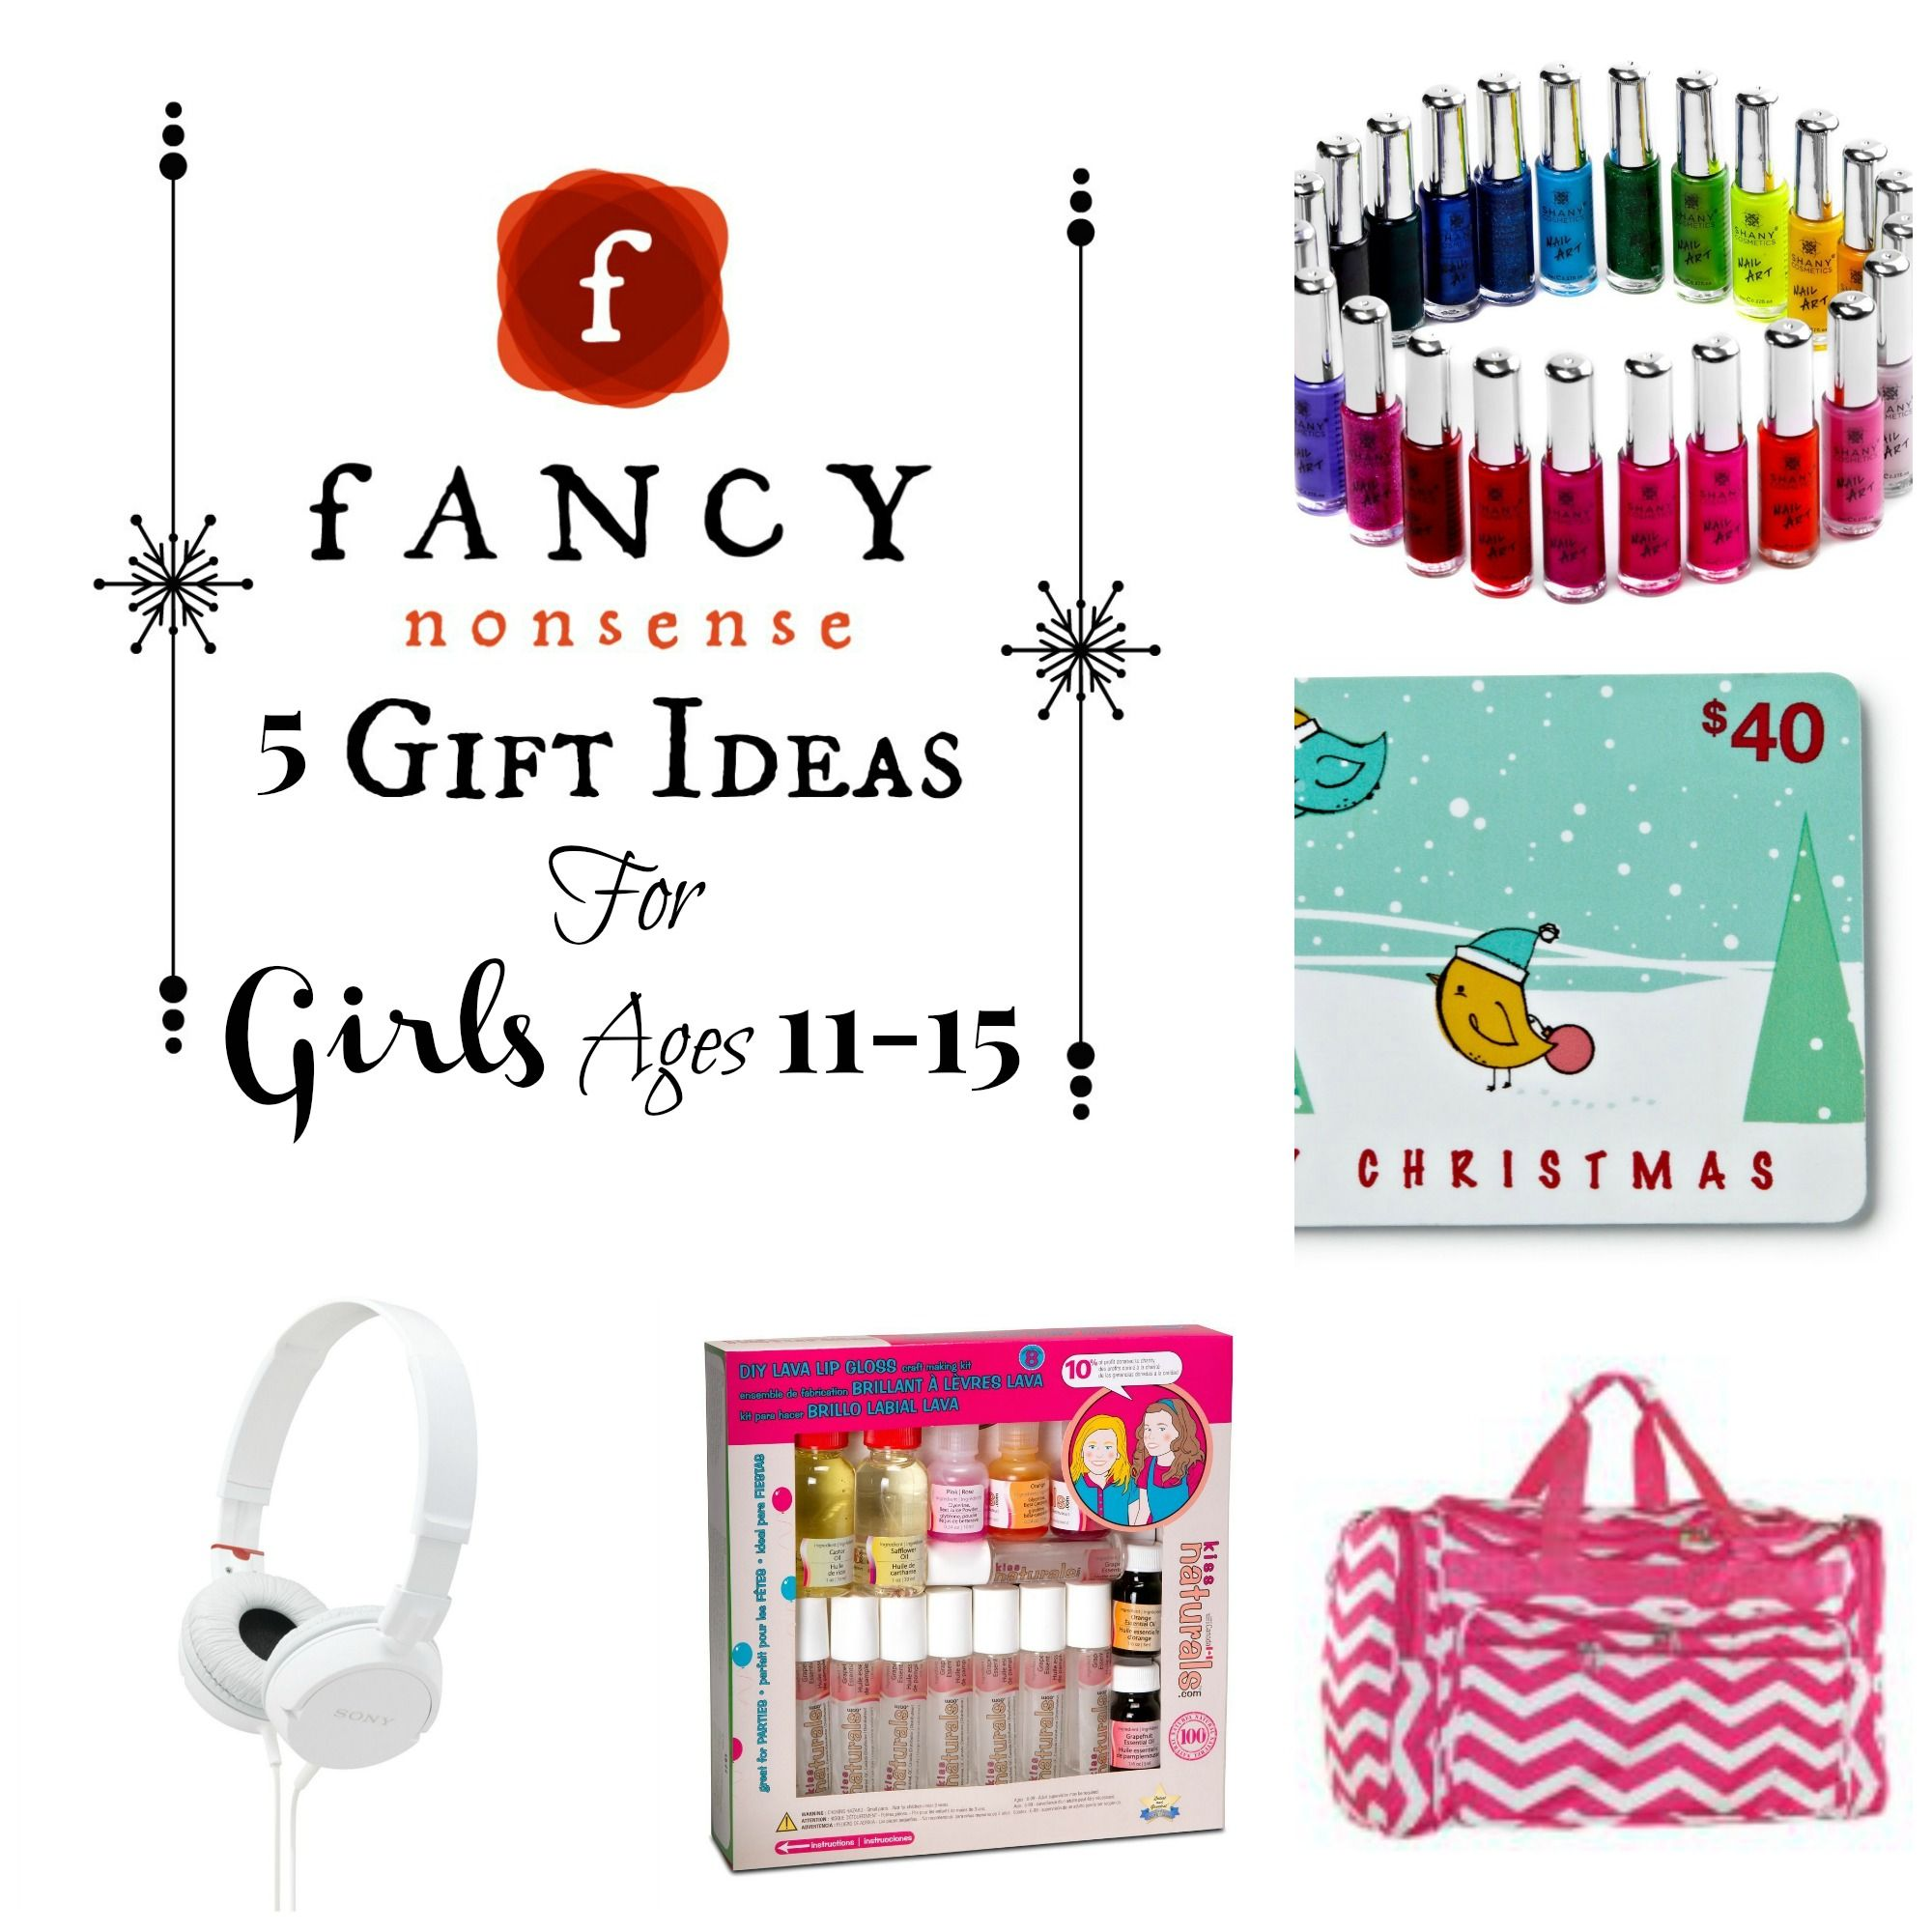 5 Gift Ideas For Girls Ages 11 15 From Fancy Nonsense 5 Gifts Christmas Gift Guide Gifts